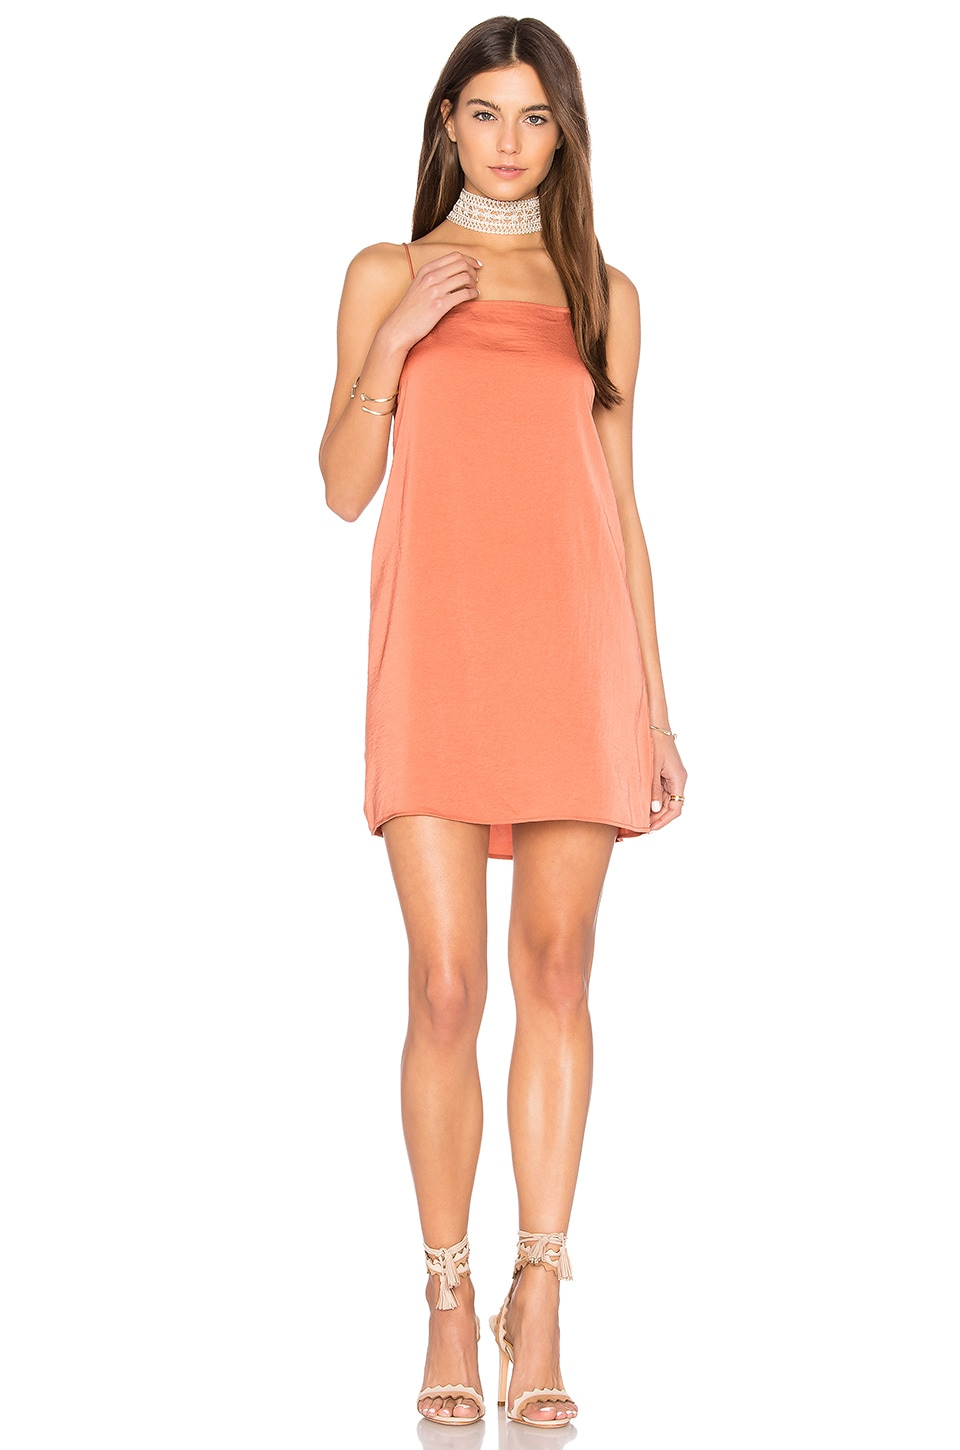 The Nightingale Cami Dress